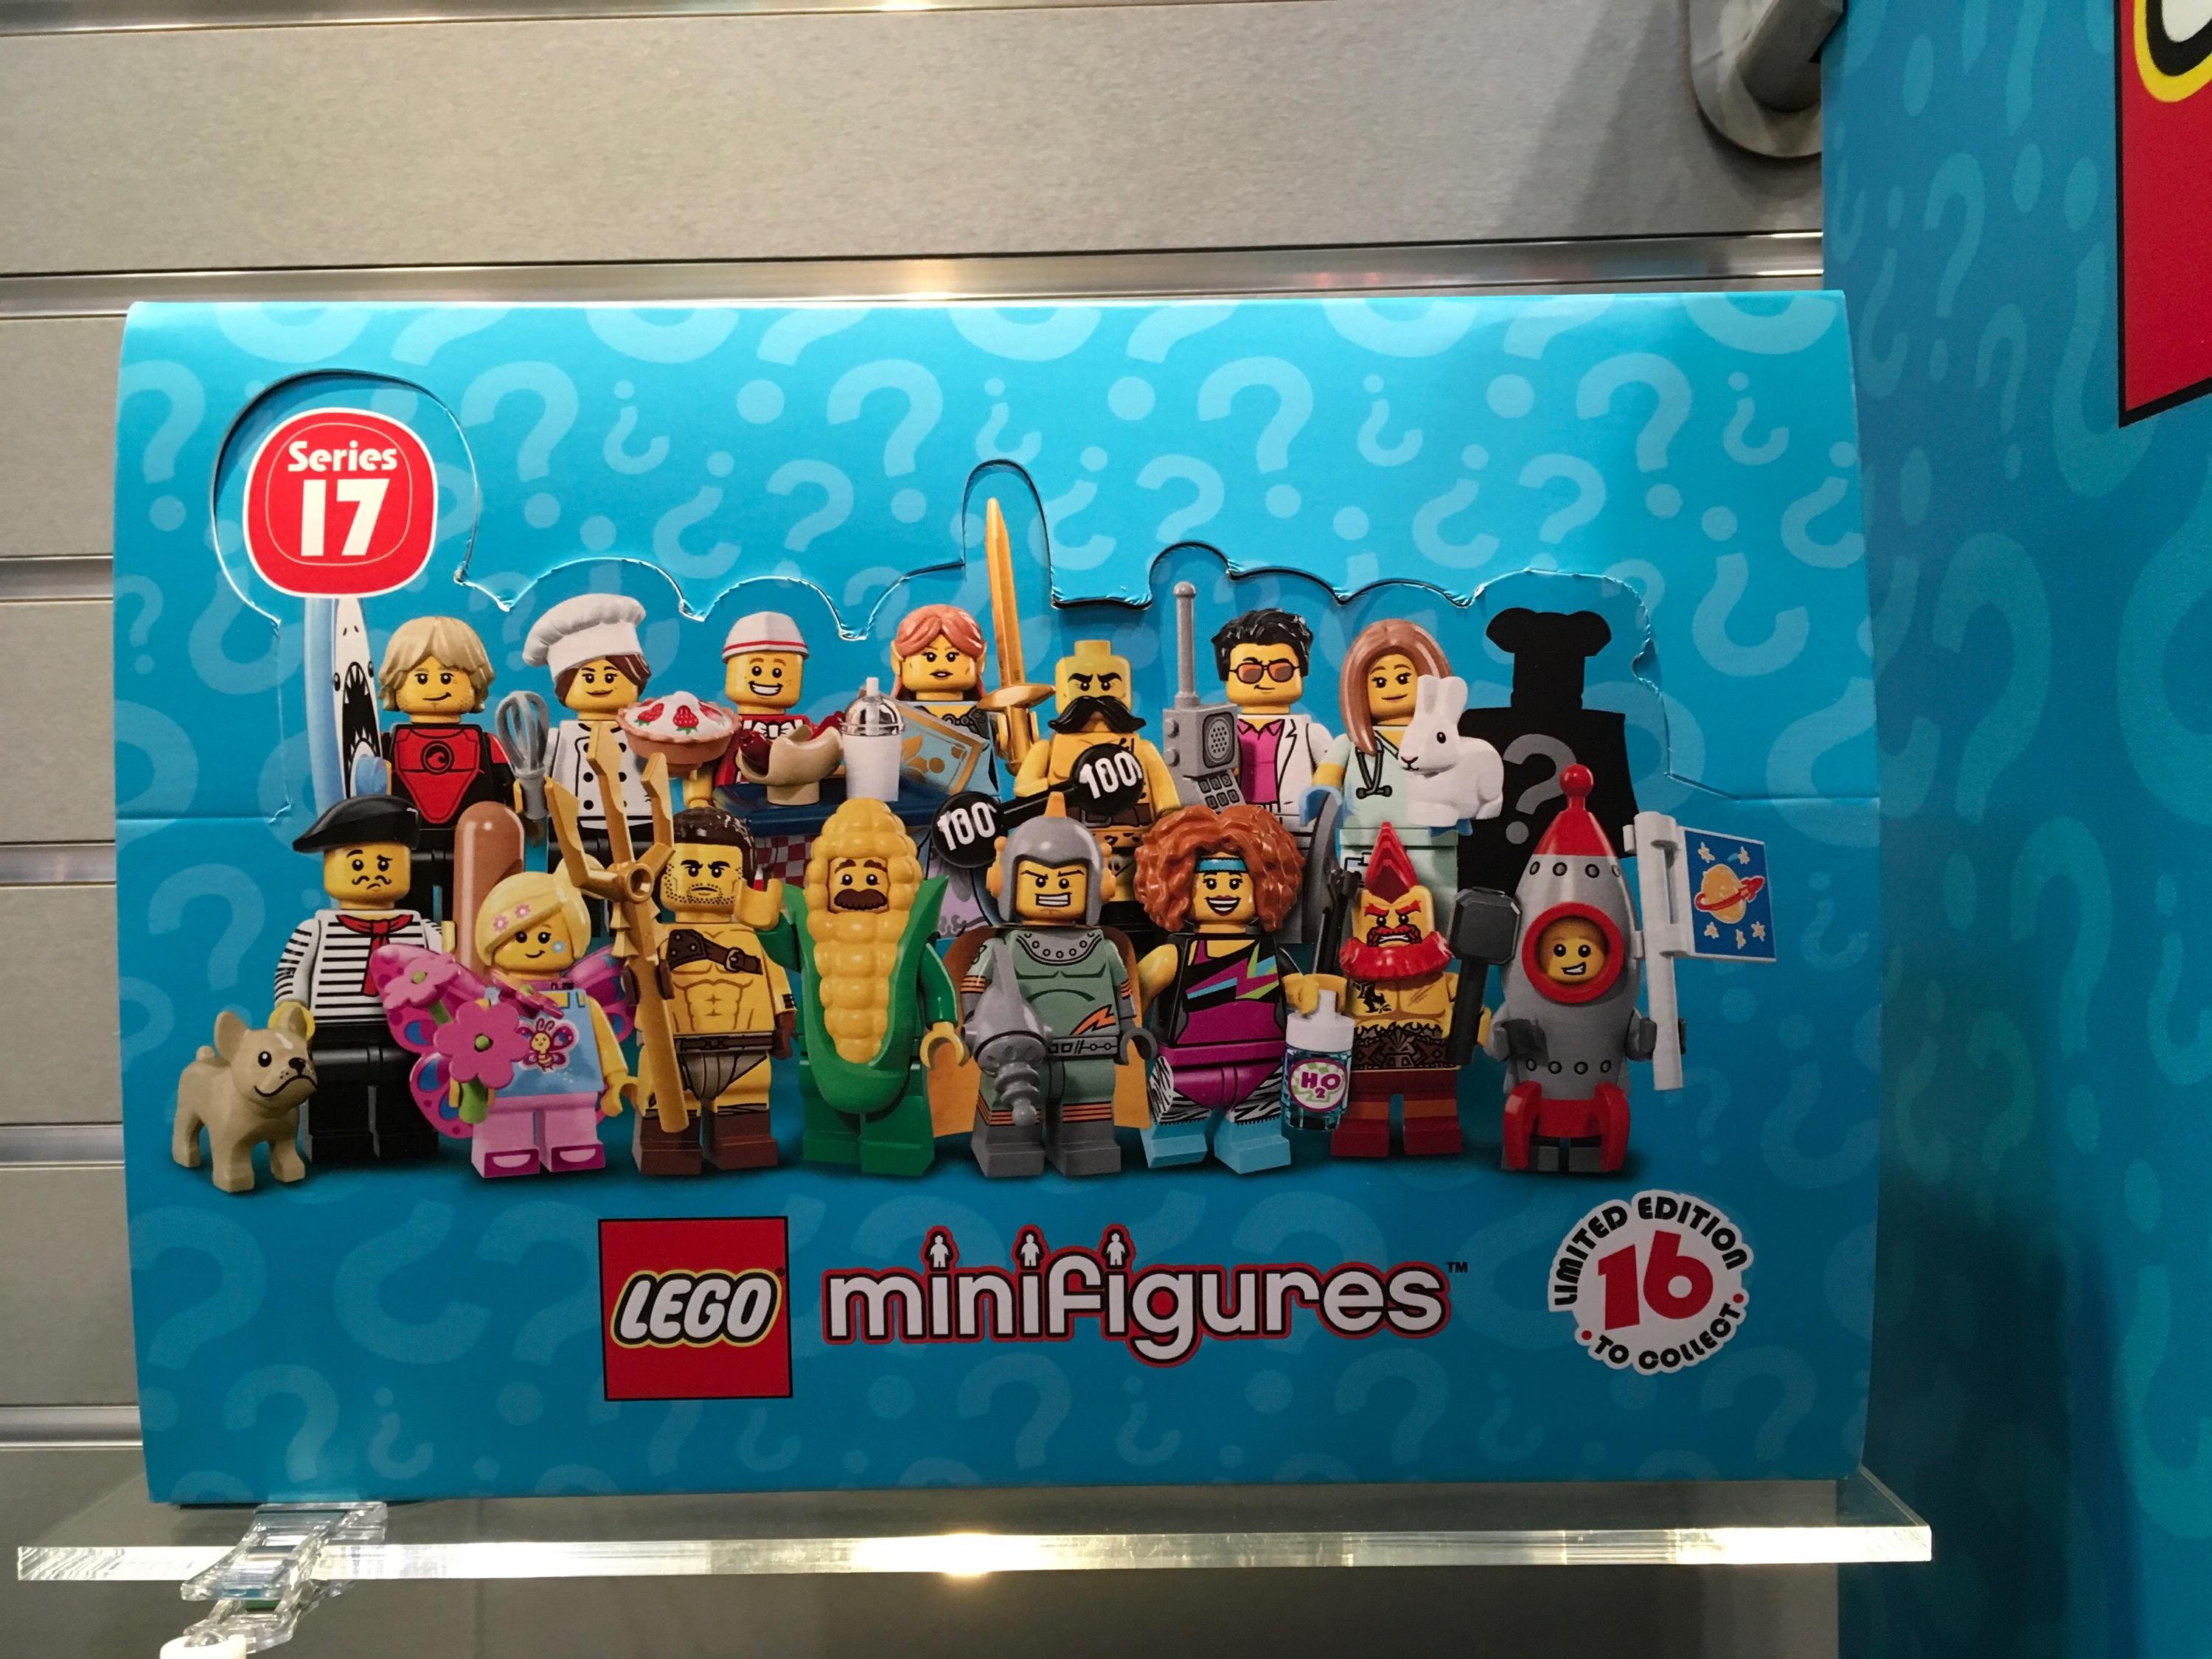 Meet The All New Characters From Lego Minifigures Series 17